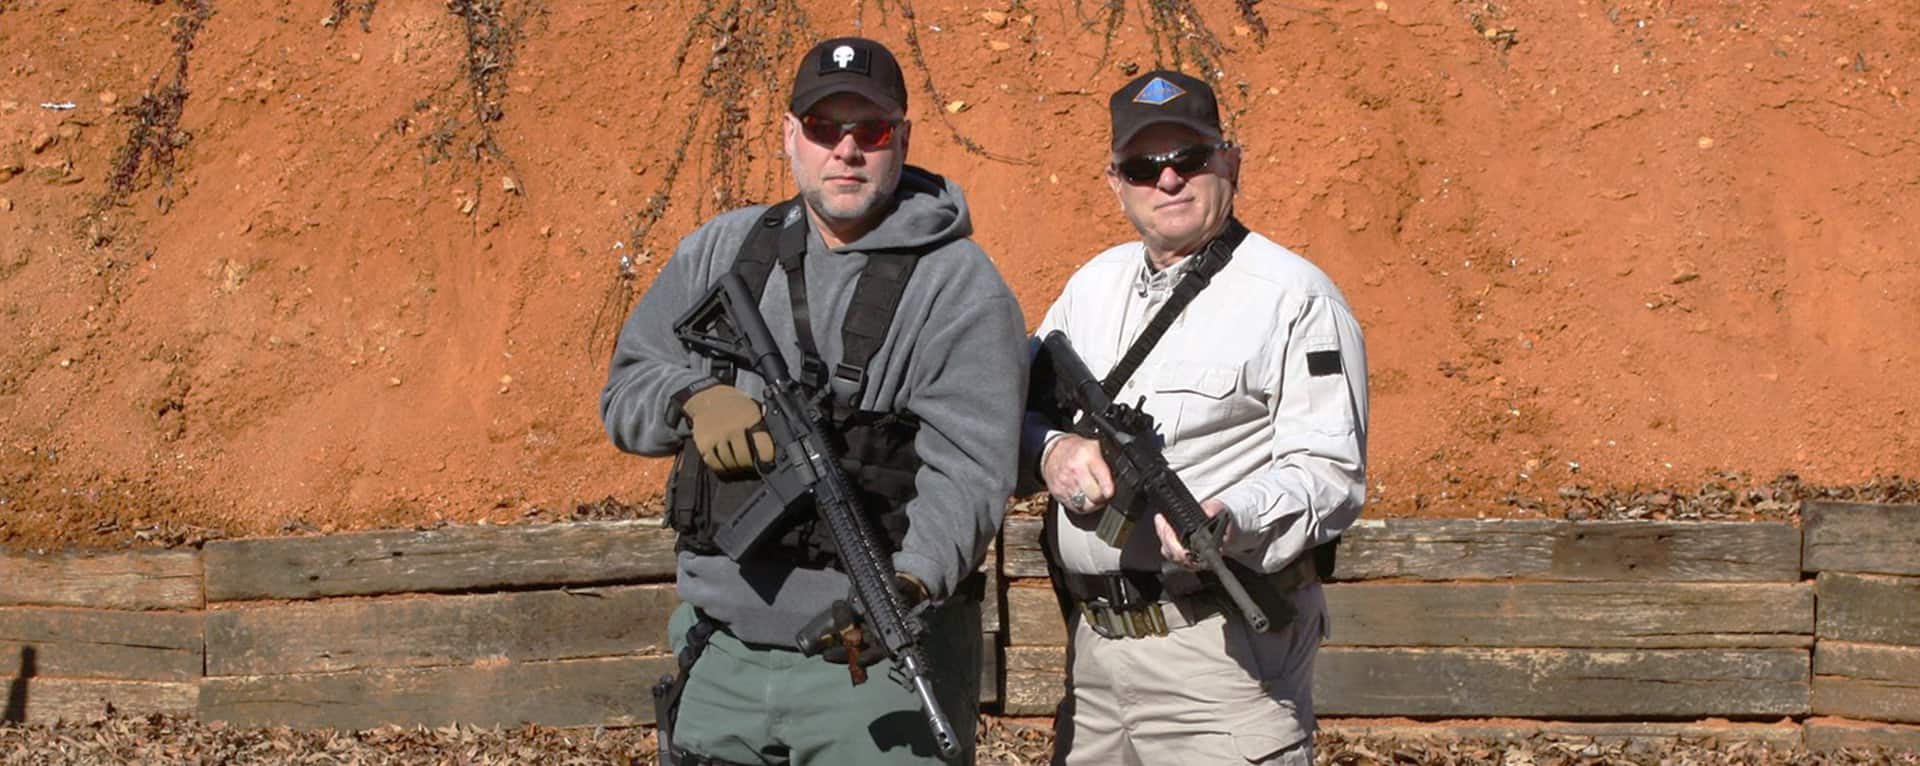 Handgun Training | Morrison Tactical | Bristol, Johnson City & Kingsport, TN